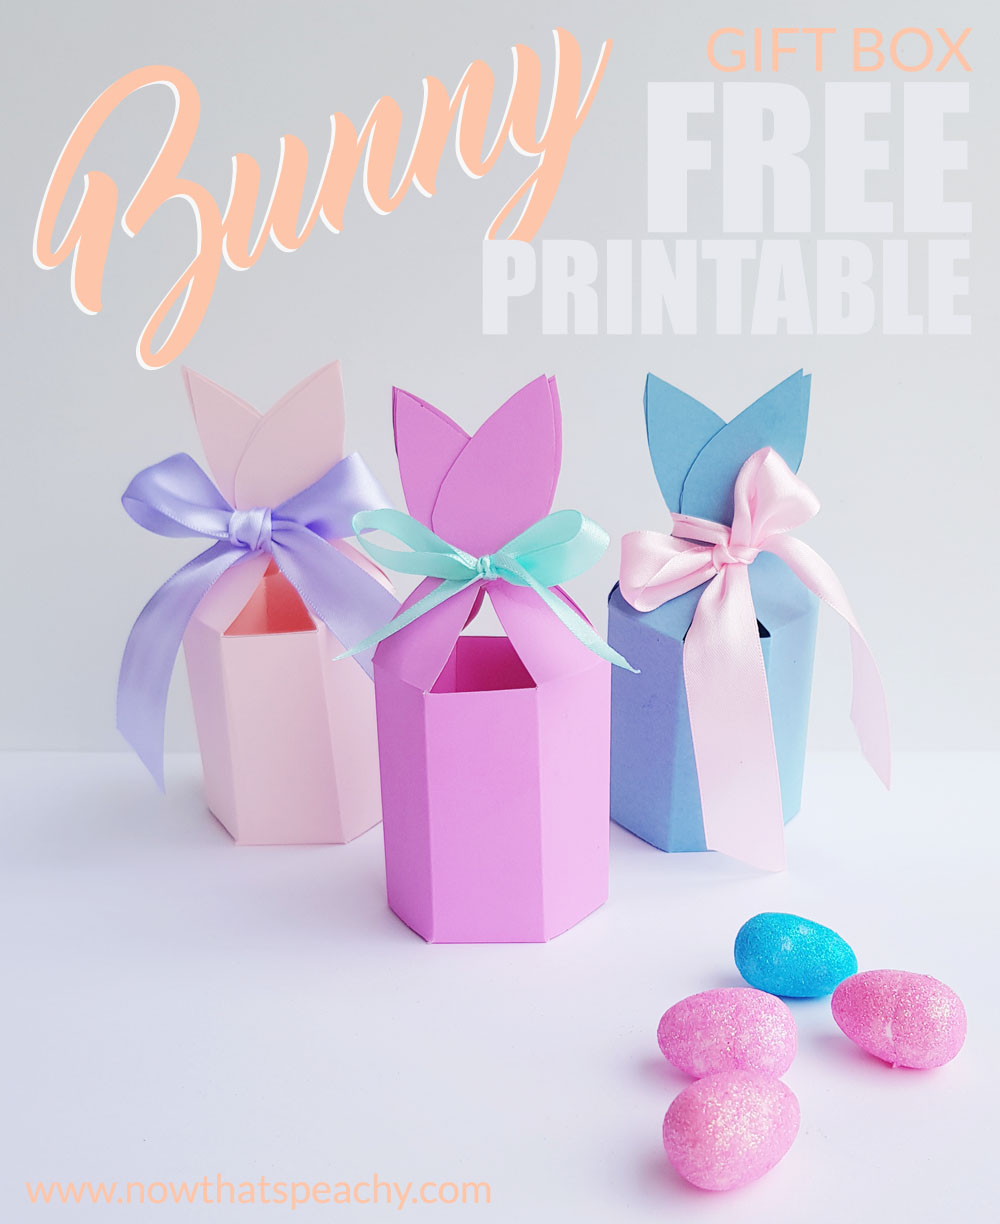 Free bunny ears gift box printable for easter now thats peachy for each easter party guest or the perfect size for small gifts for the kids school friends teacher or work colleagues also a easy craft project for negle Gallery